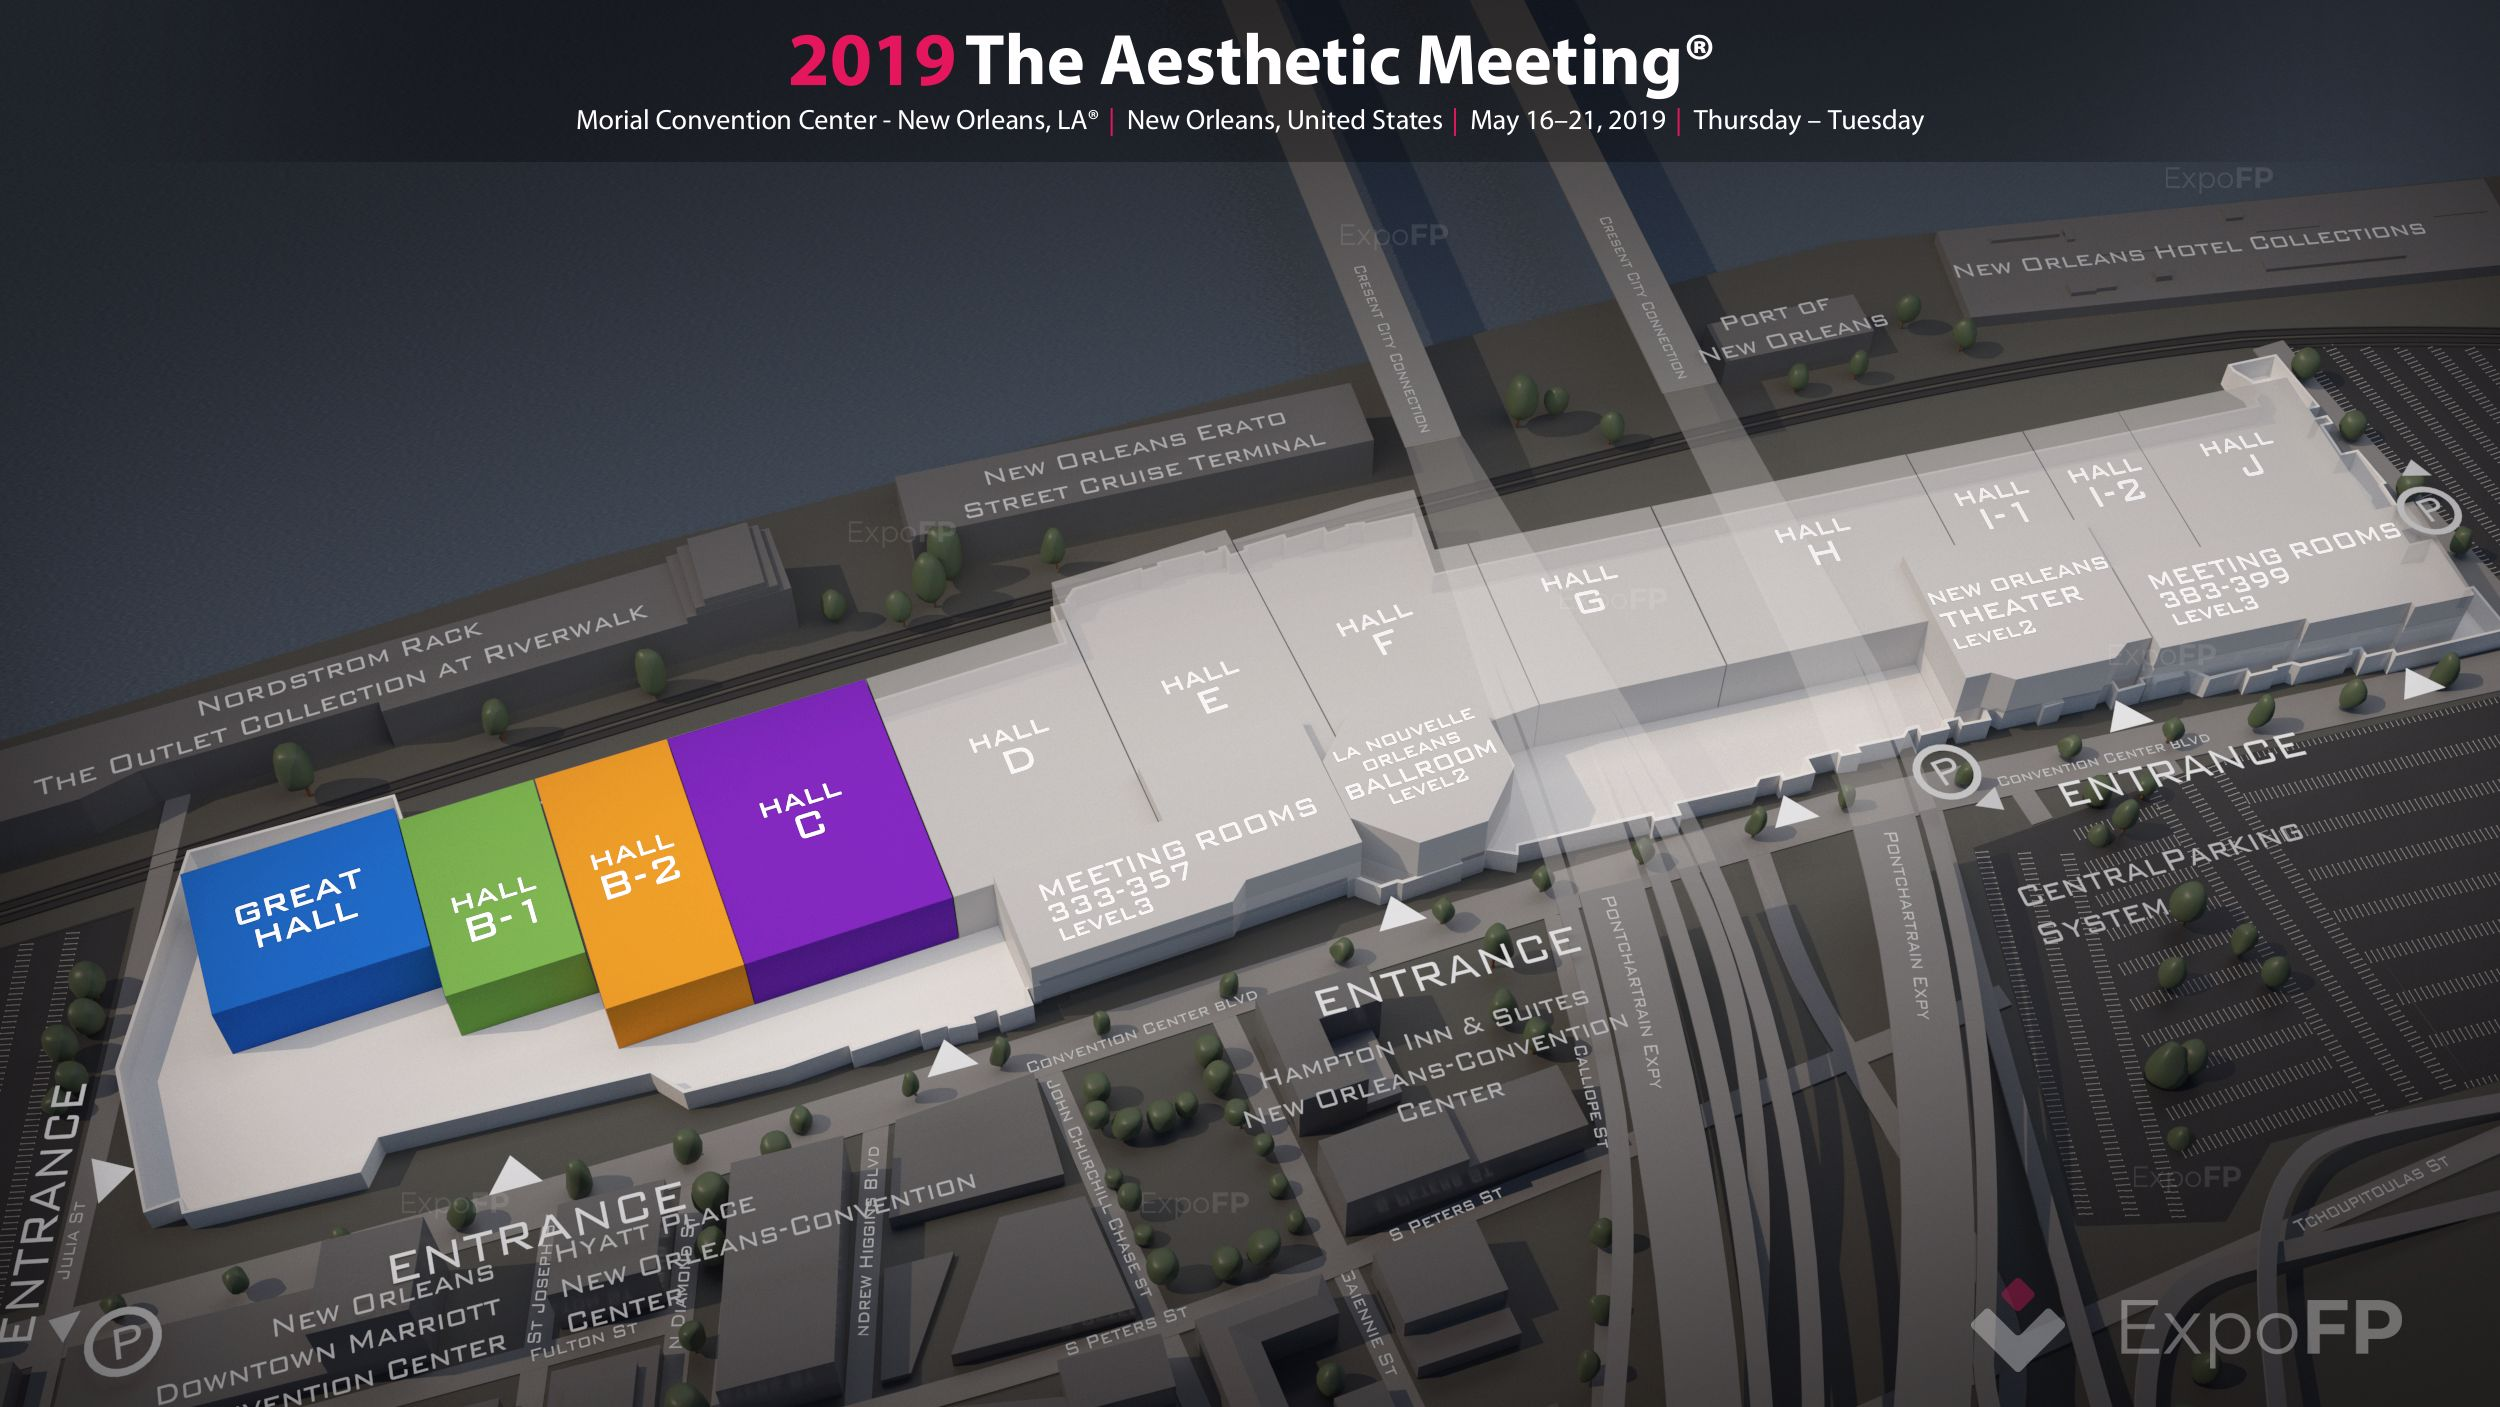 The Aesthetic Meeting 2019 in Morial Convention Center